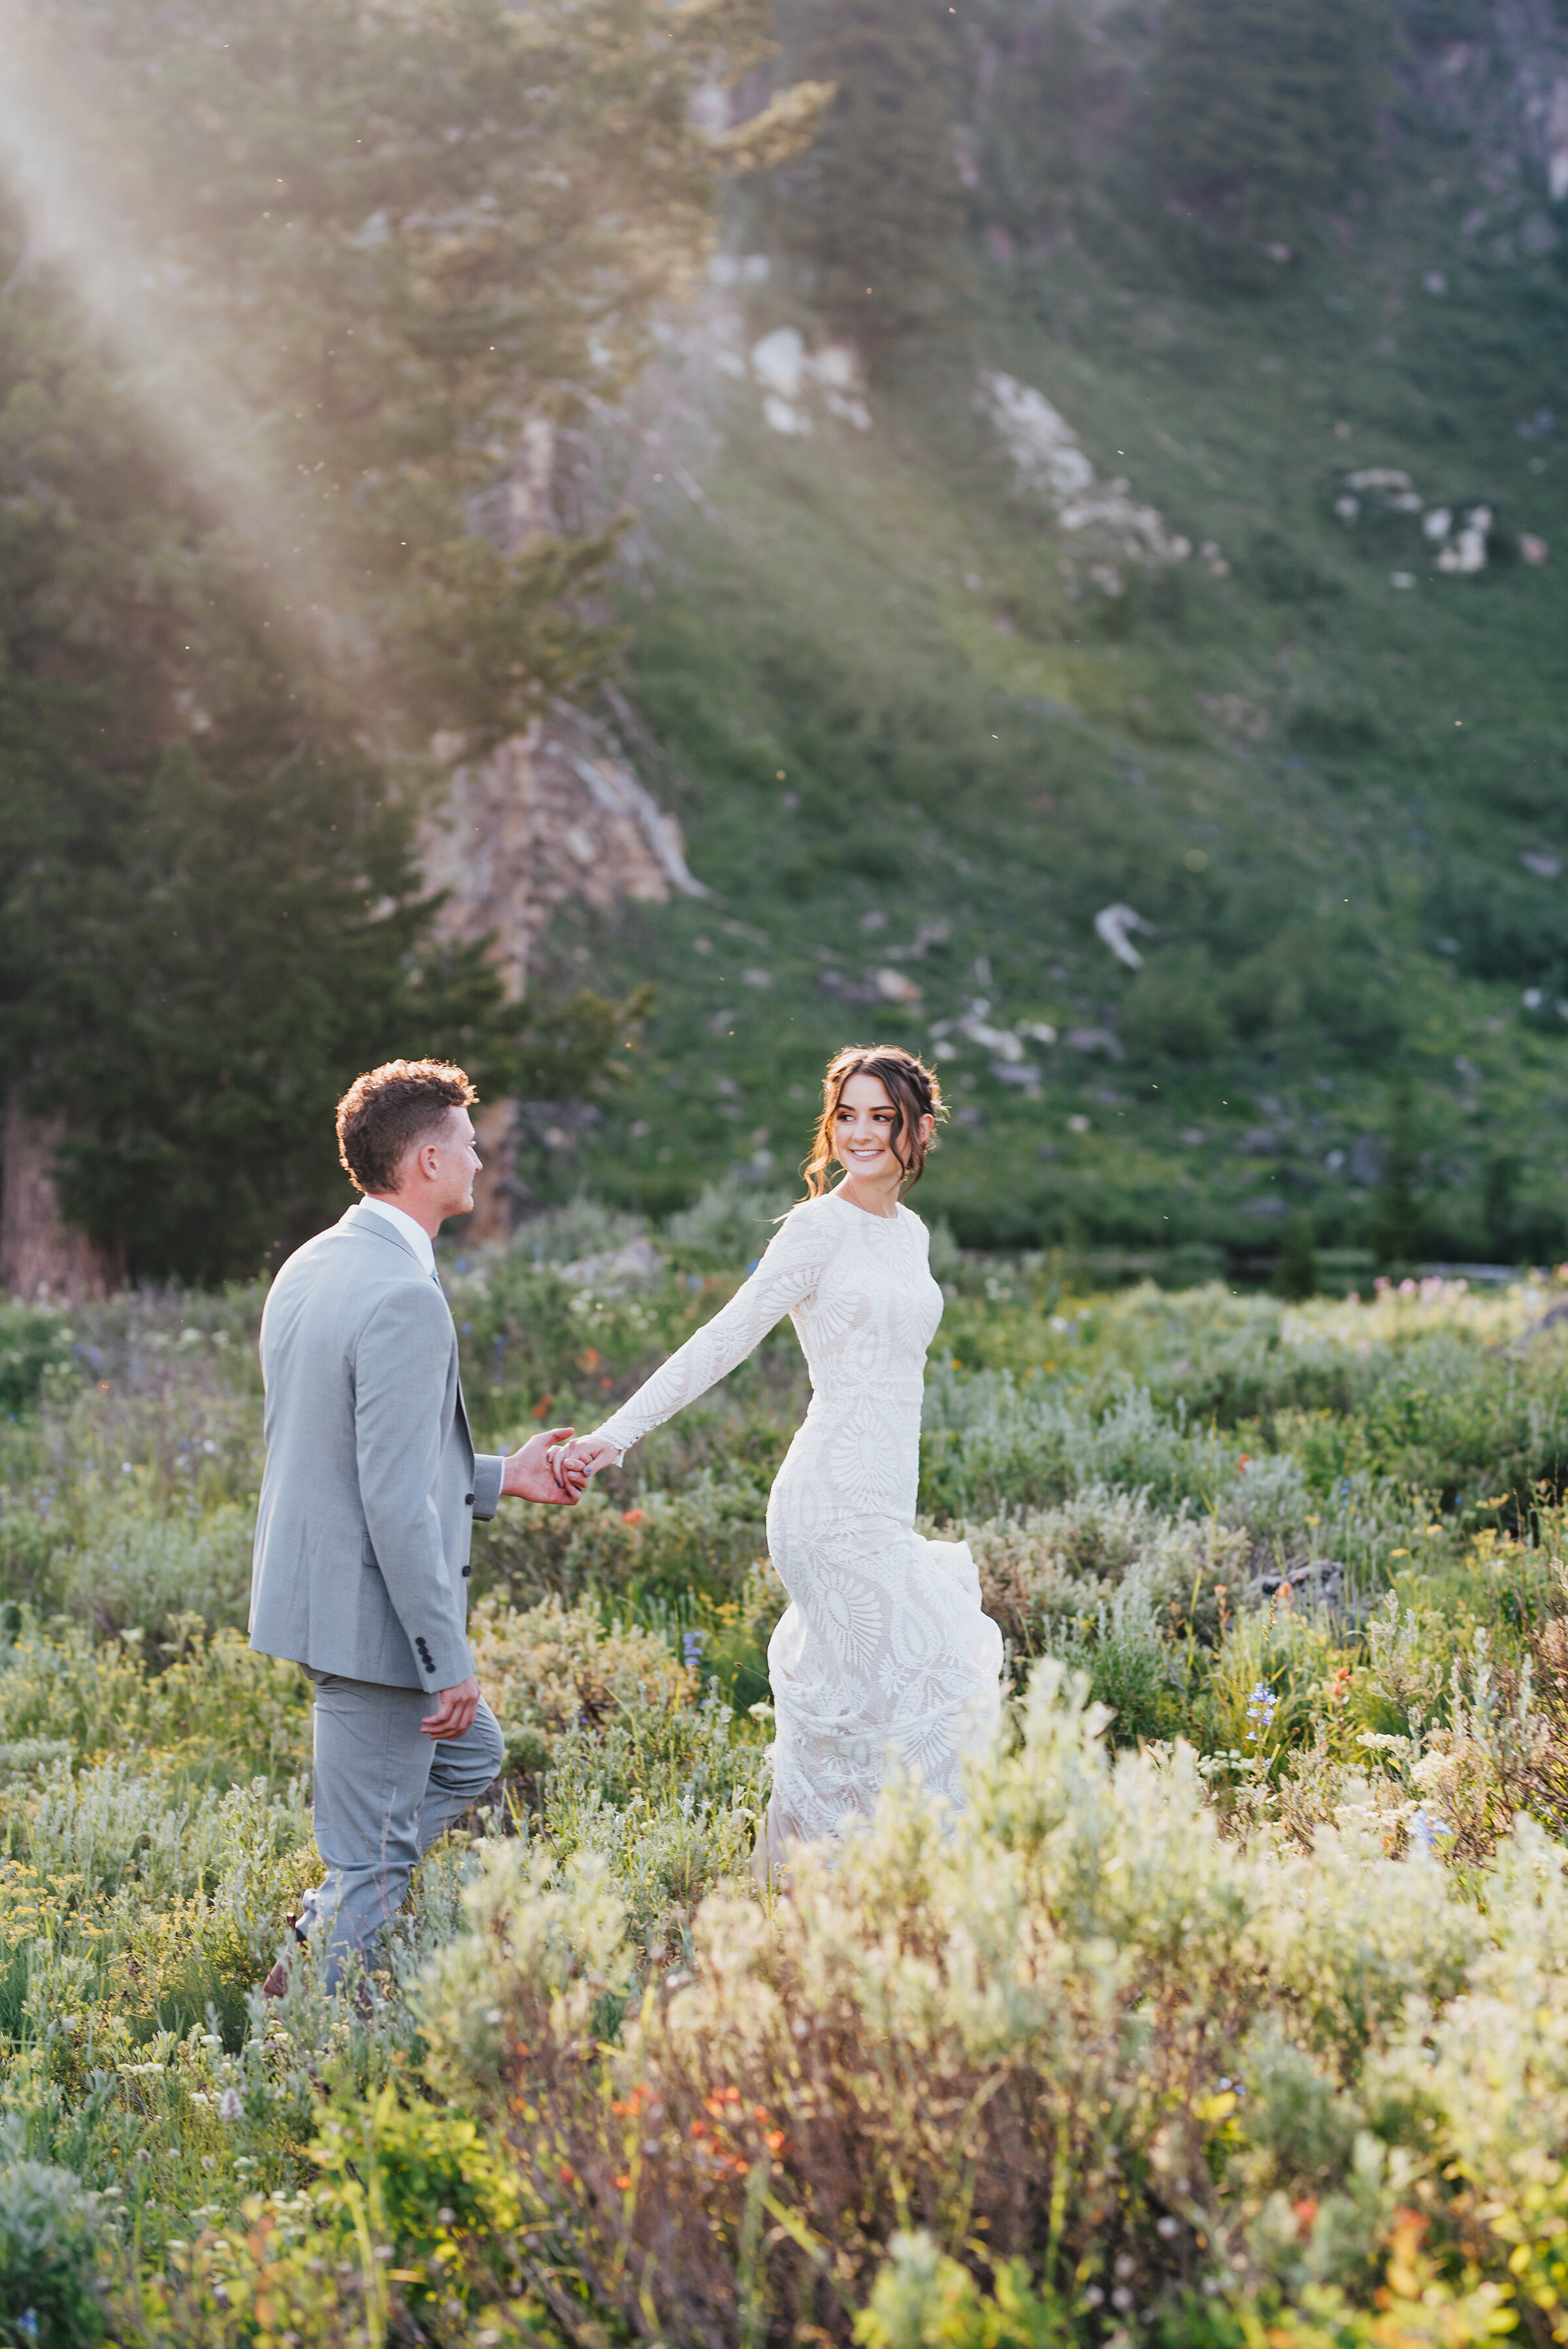 Leading with love in this dreamy picturesque setting up Logan canyon. Kristi Alyse photography Logan Utah wedding photographer forest nature dreamy formals Logan canyon Tony Grove scenic bridals Northern Utah photographer Utah brides bride and groom Cache Valley #kristialysephotography #loganutahphotographer #tonygrove #logancanyon #utahweddingphotographer #bridals #formals #wildflowers #northernutah #utahbrides